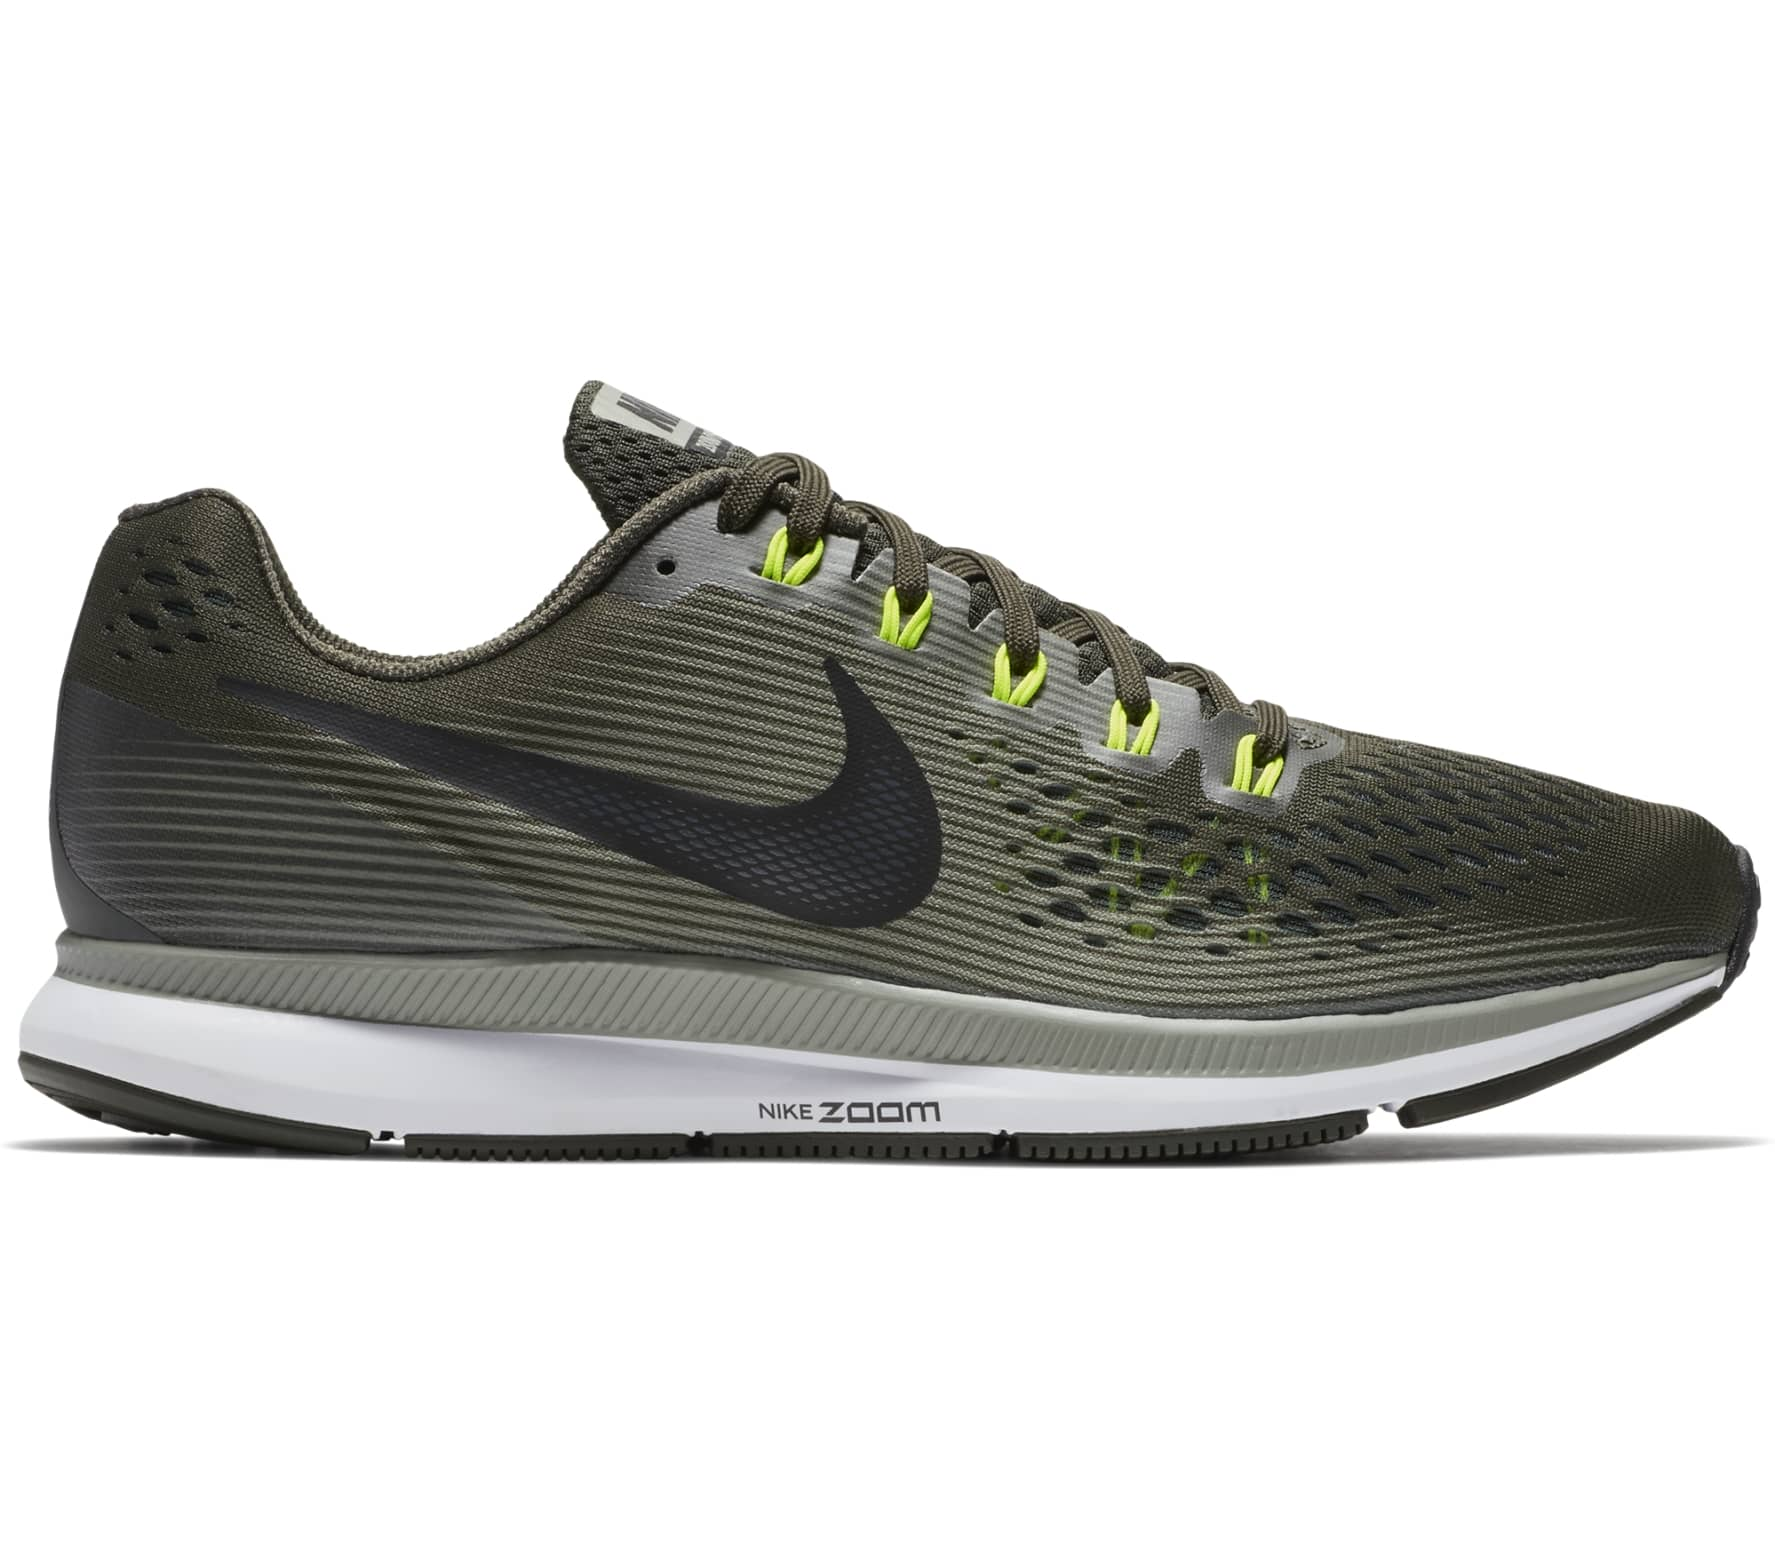 premium selection 227b7 3955b Nike - Air Zoom Pegasus 34 men s running shoes (green brown)